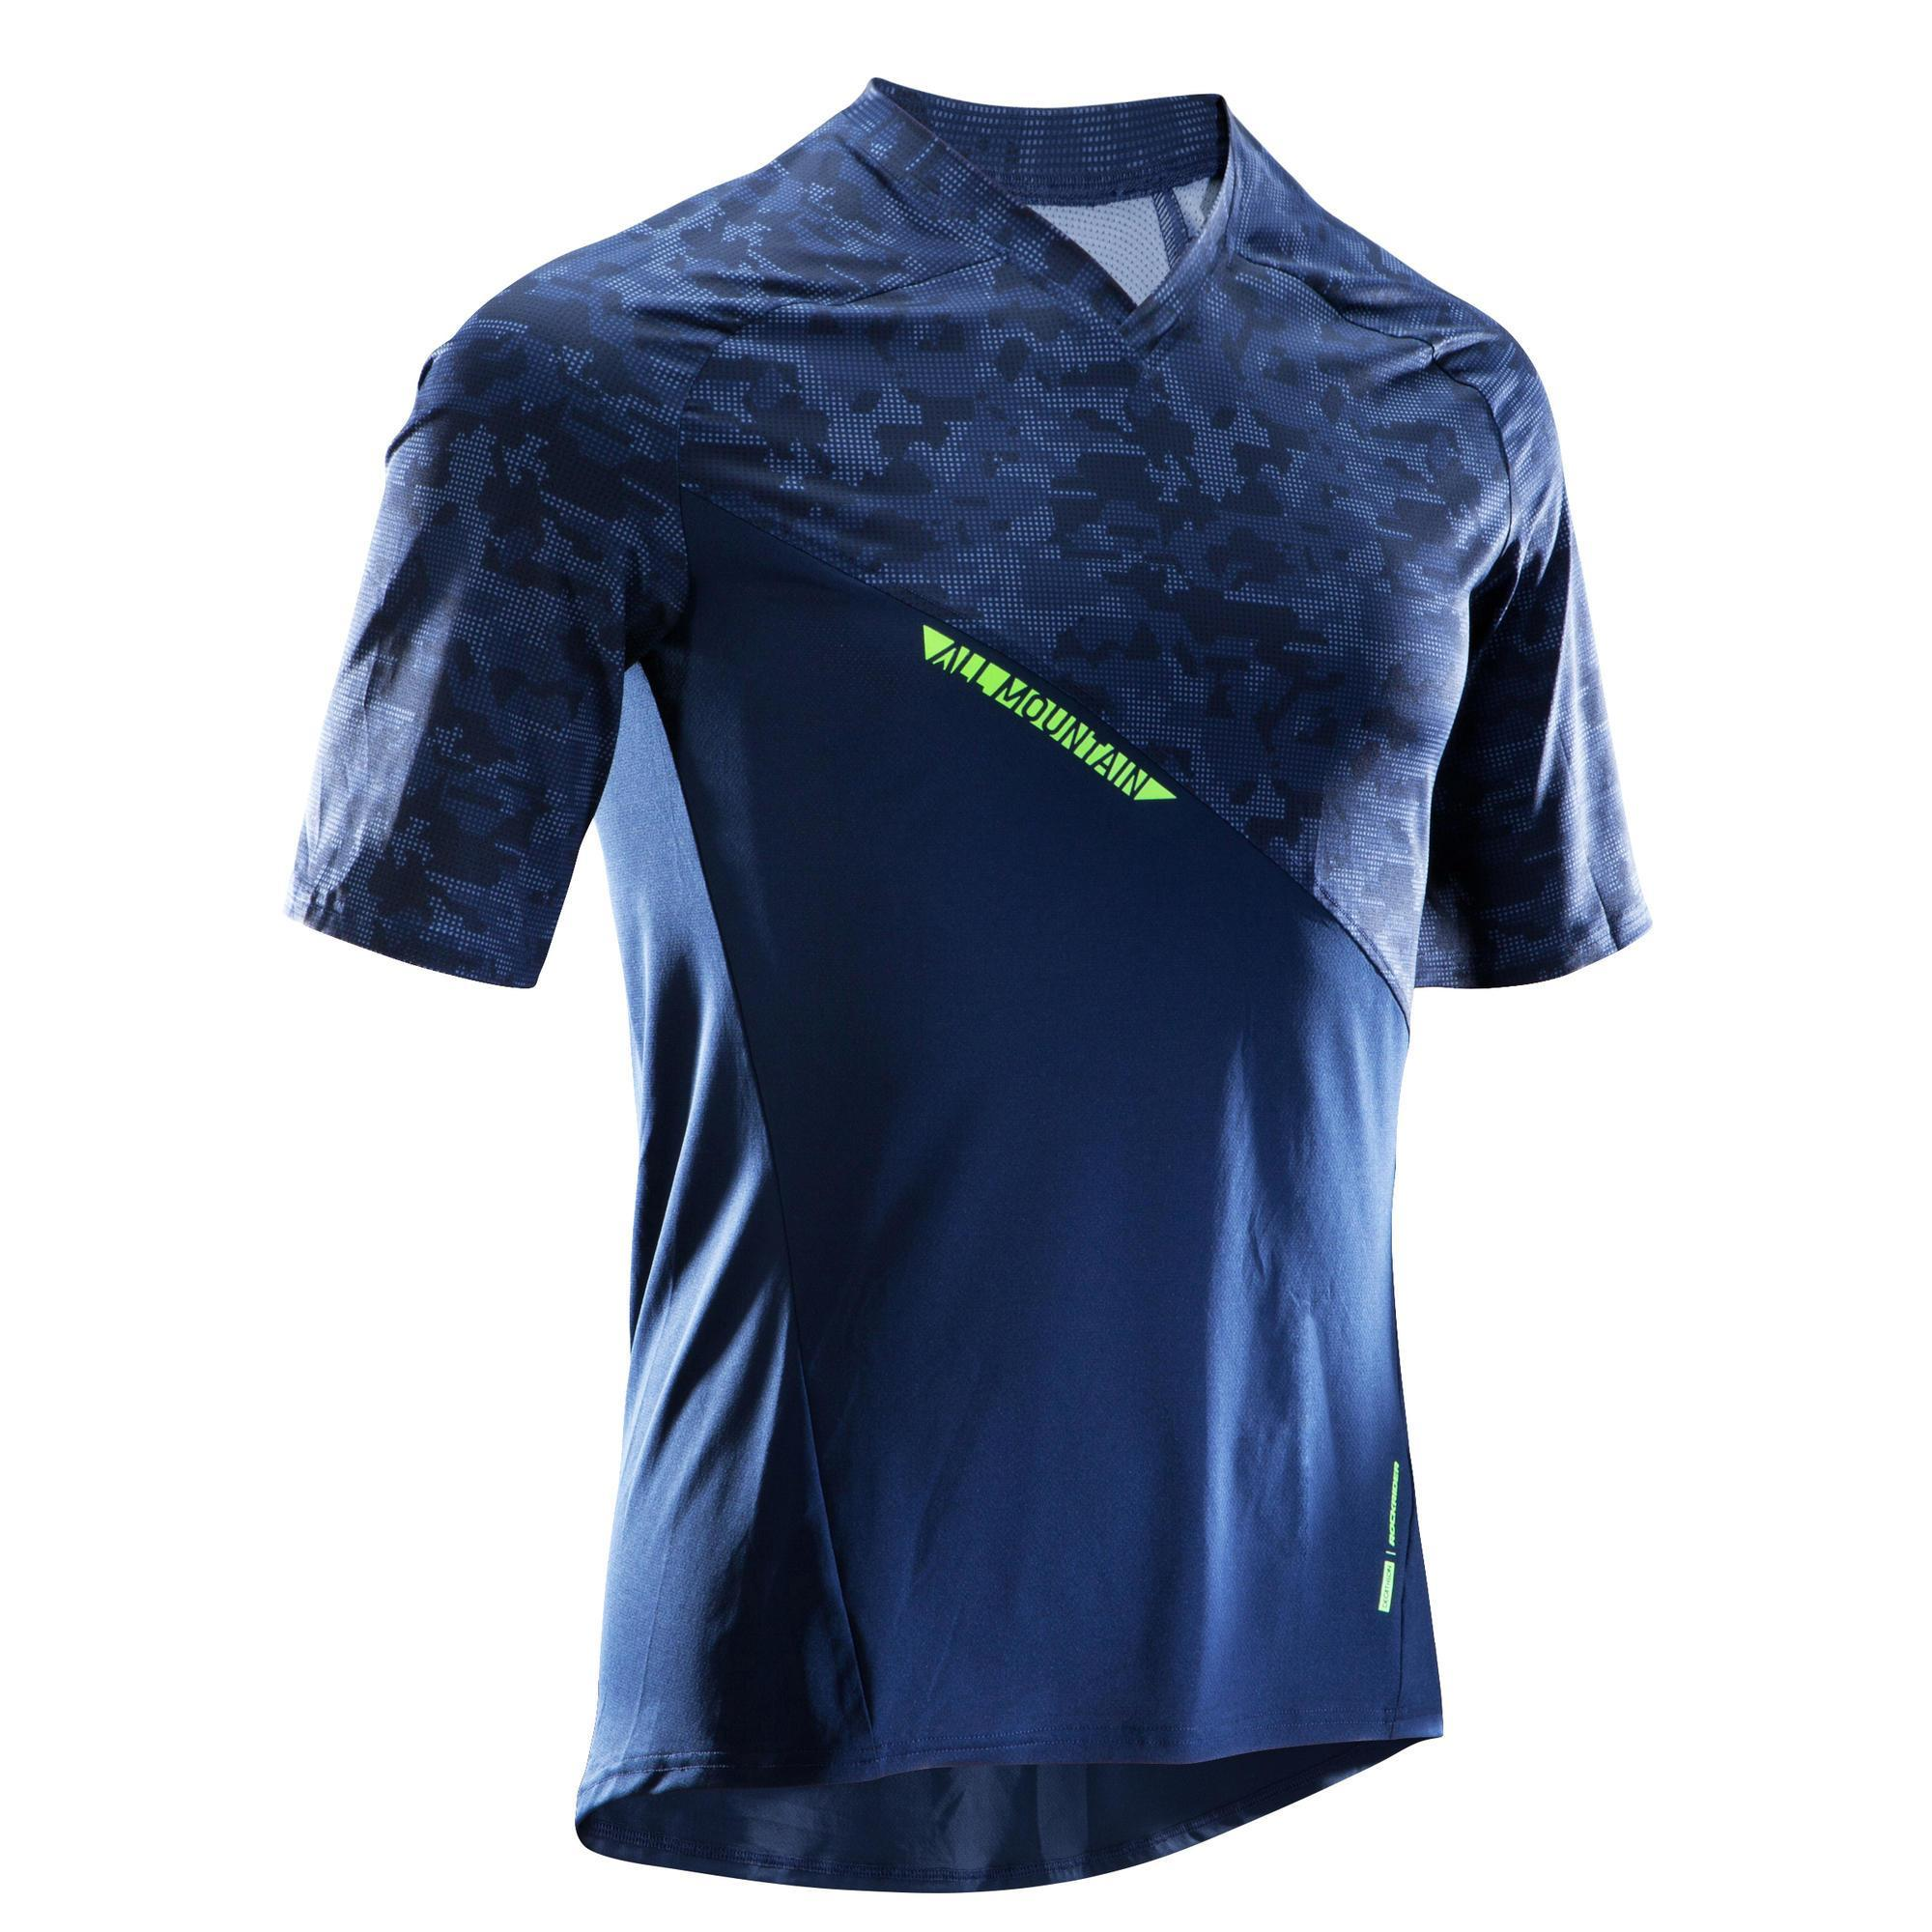 Rockrider MTB-shirt voor All Mountain korte mouwen AM kopen